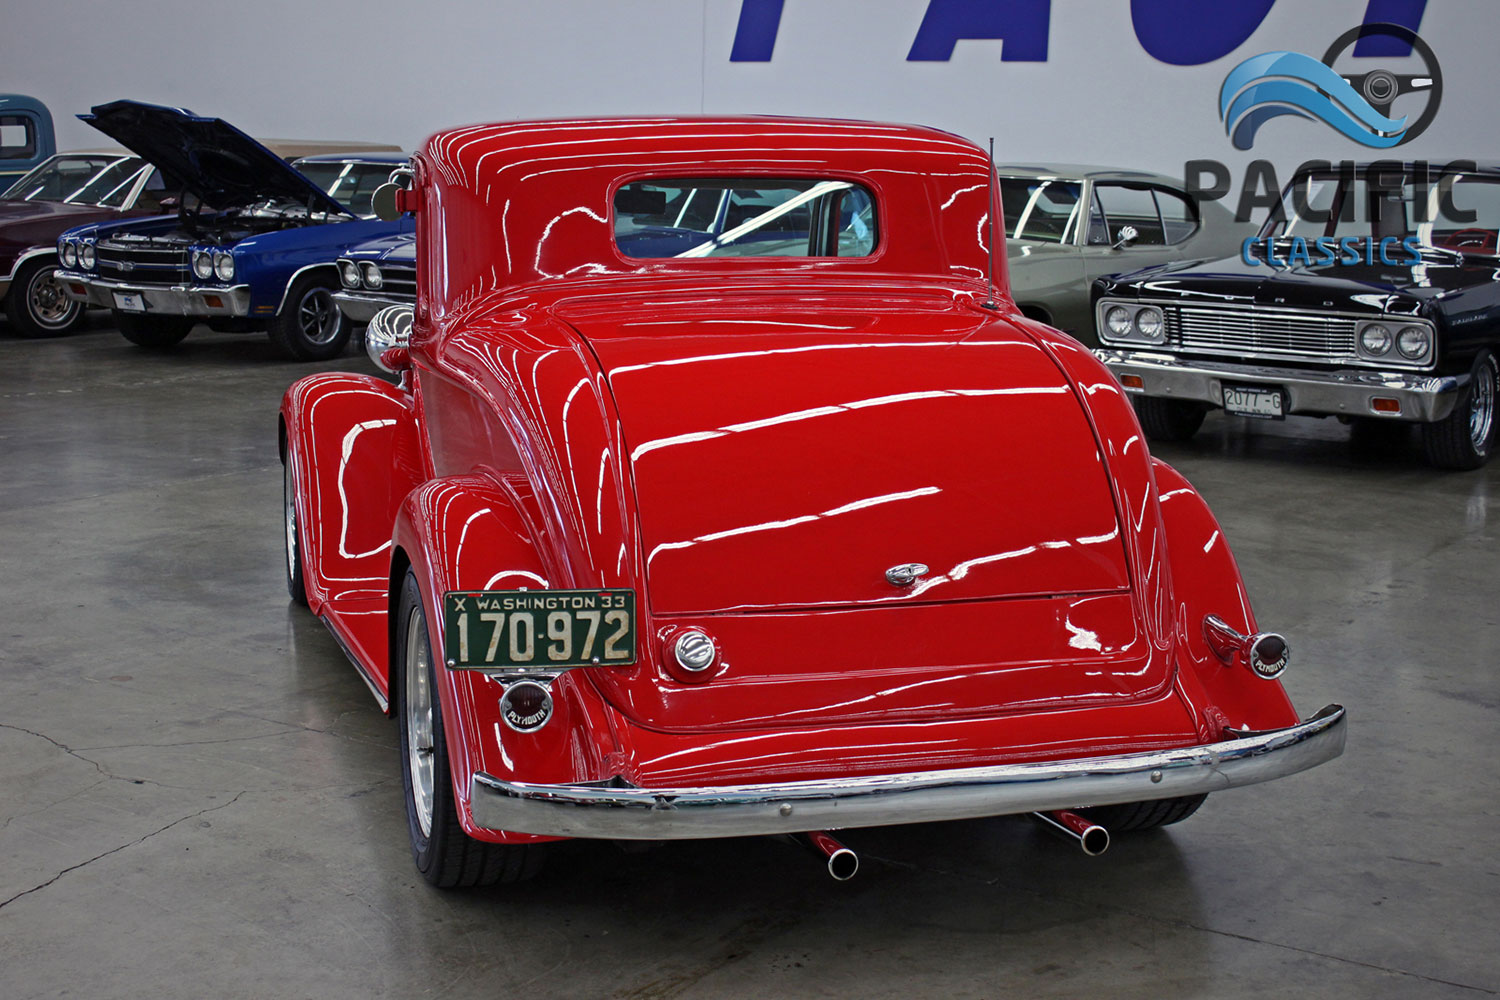 33 plymouth (9)